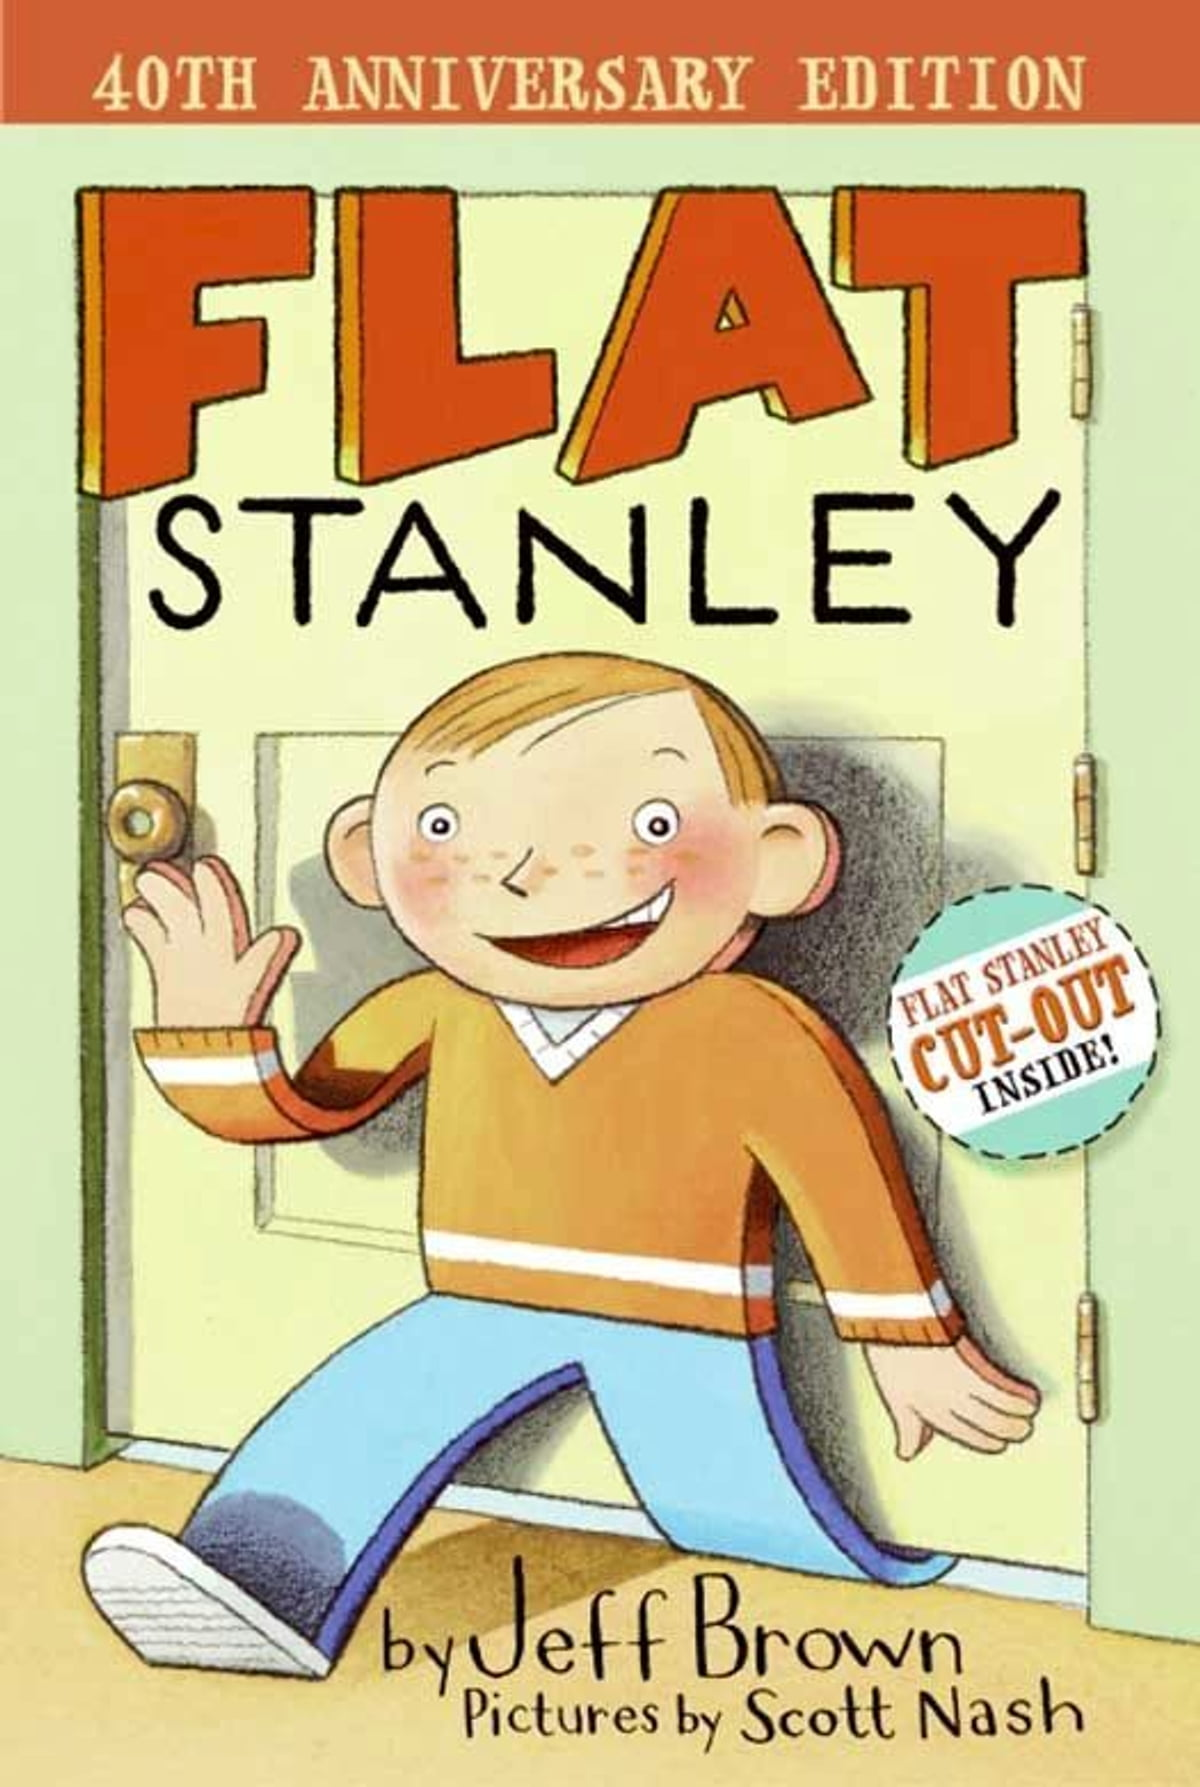 Picture of a Flat Stanley book cover.